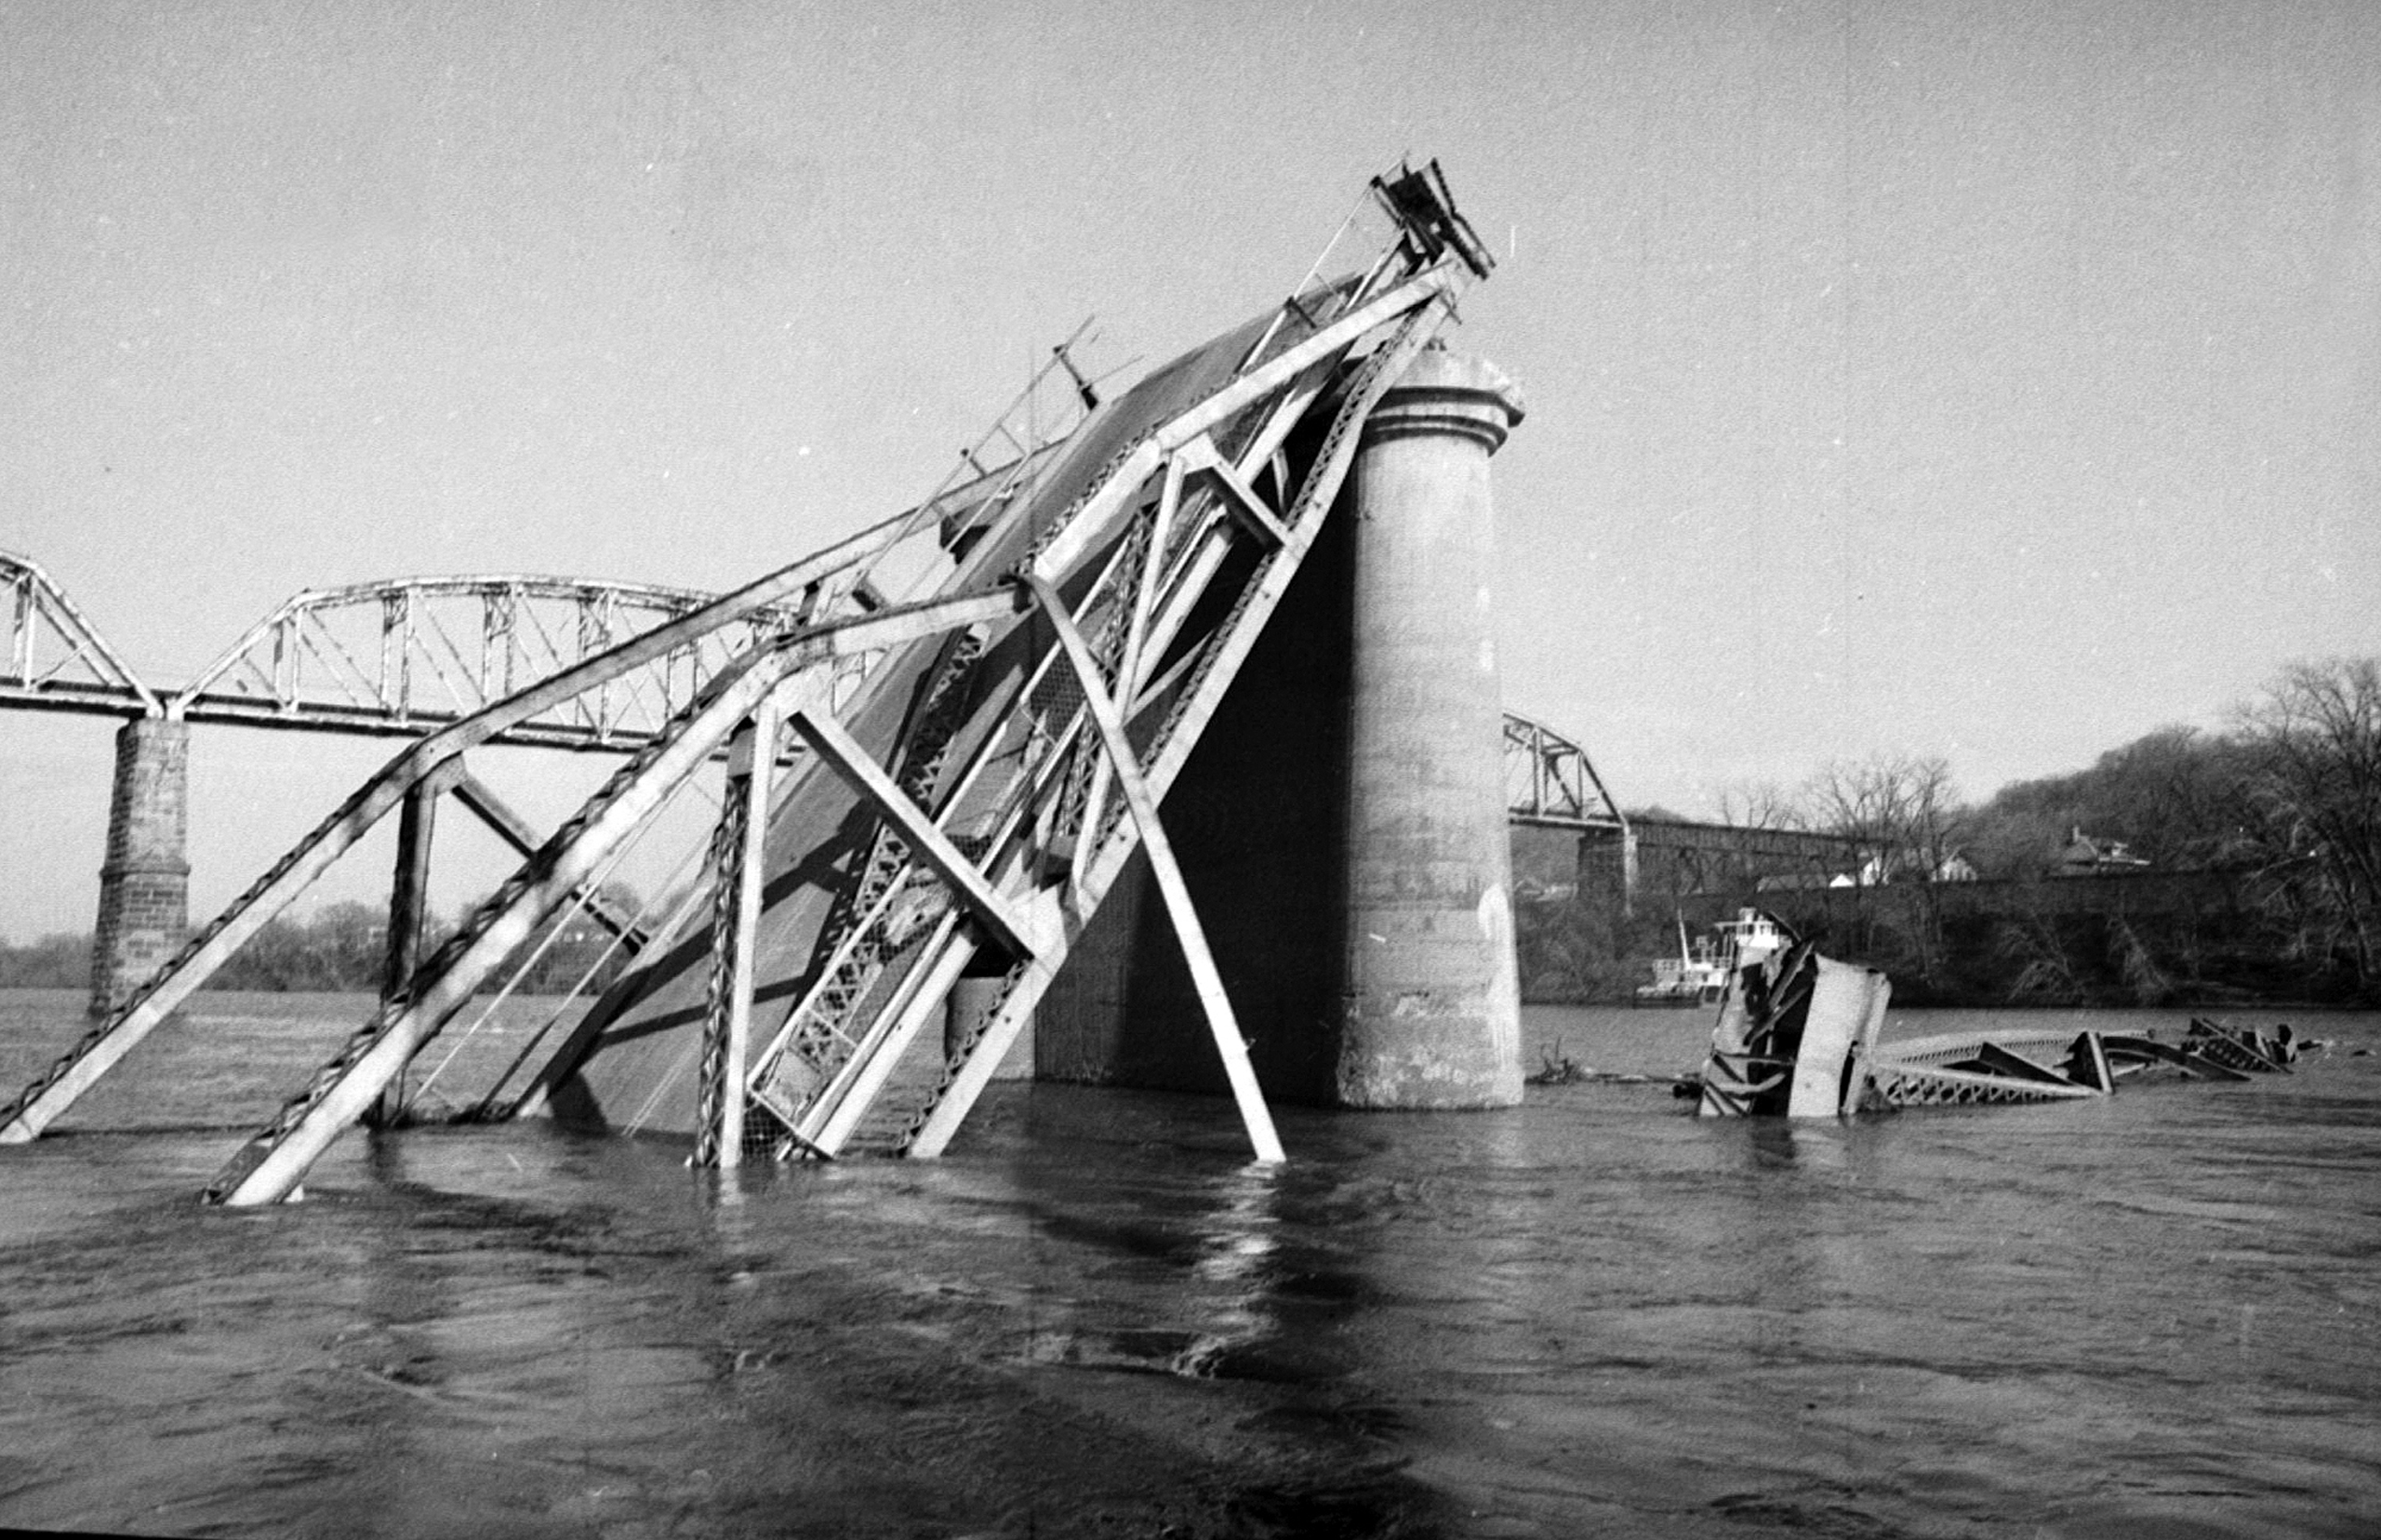 Wreckage from the Silver Bridge collapse at Point Pleasant, W.Va.